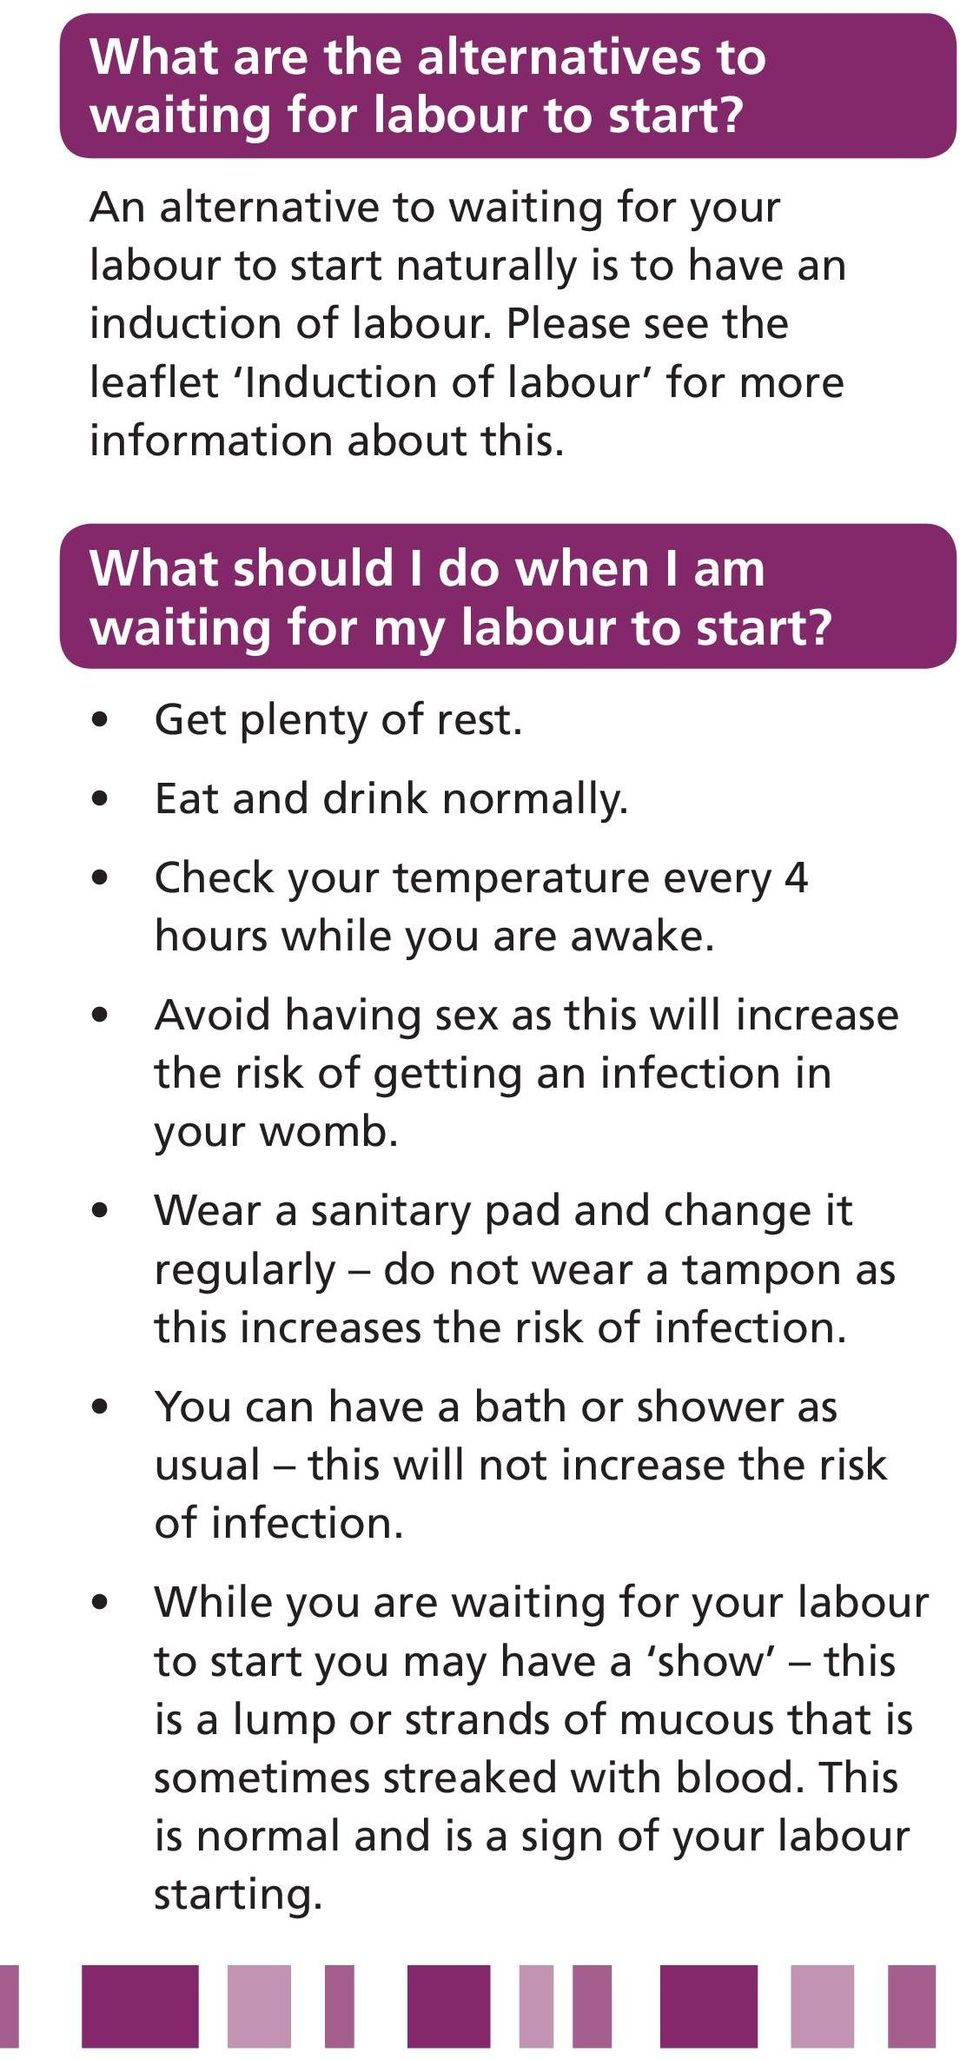 Check your temperature every 4 hours while you are awake. Avoid having sex as this will increase the risk of getting an infection in your womb.